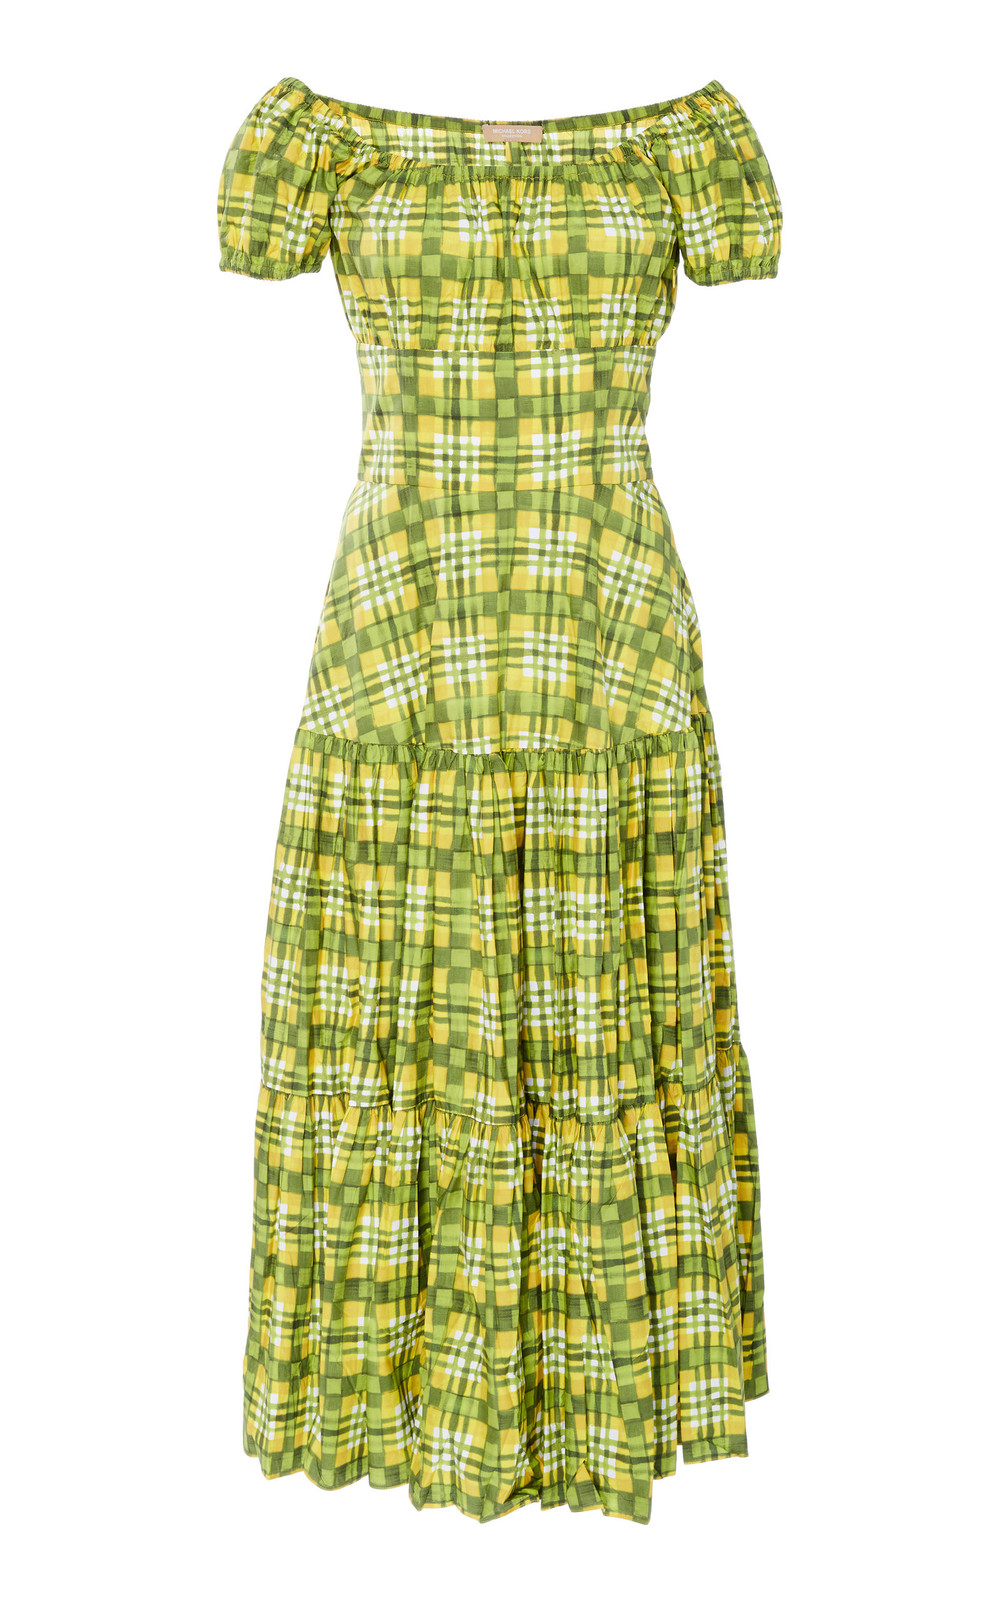 Michael Kors Collection Crushed Cap-Sleeve Cotton Tiered Dress in green